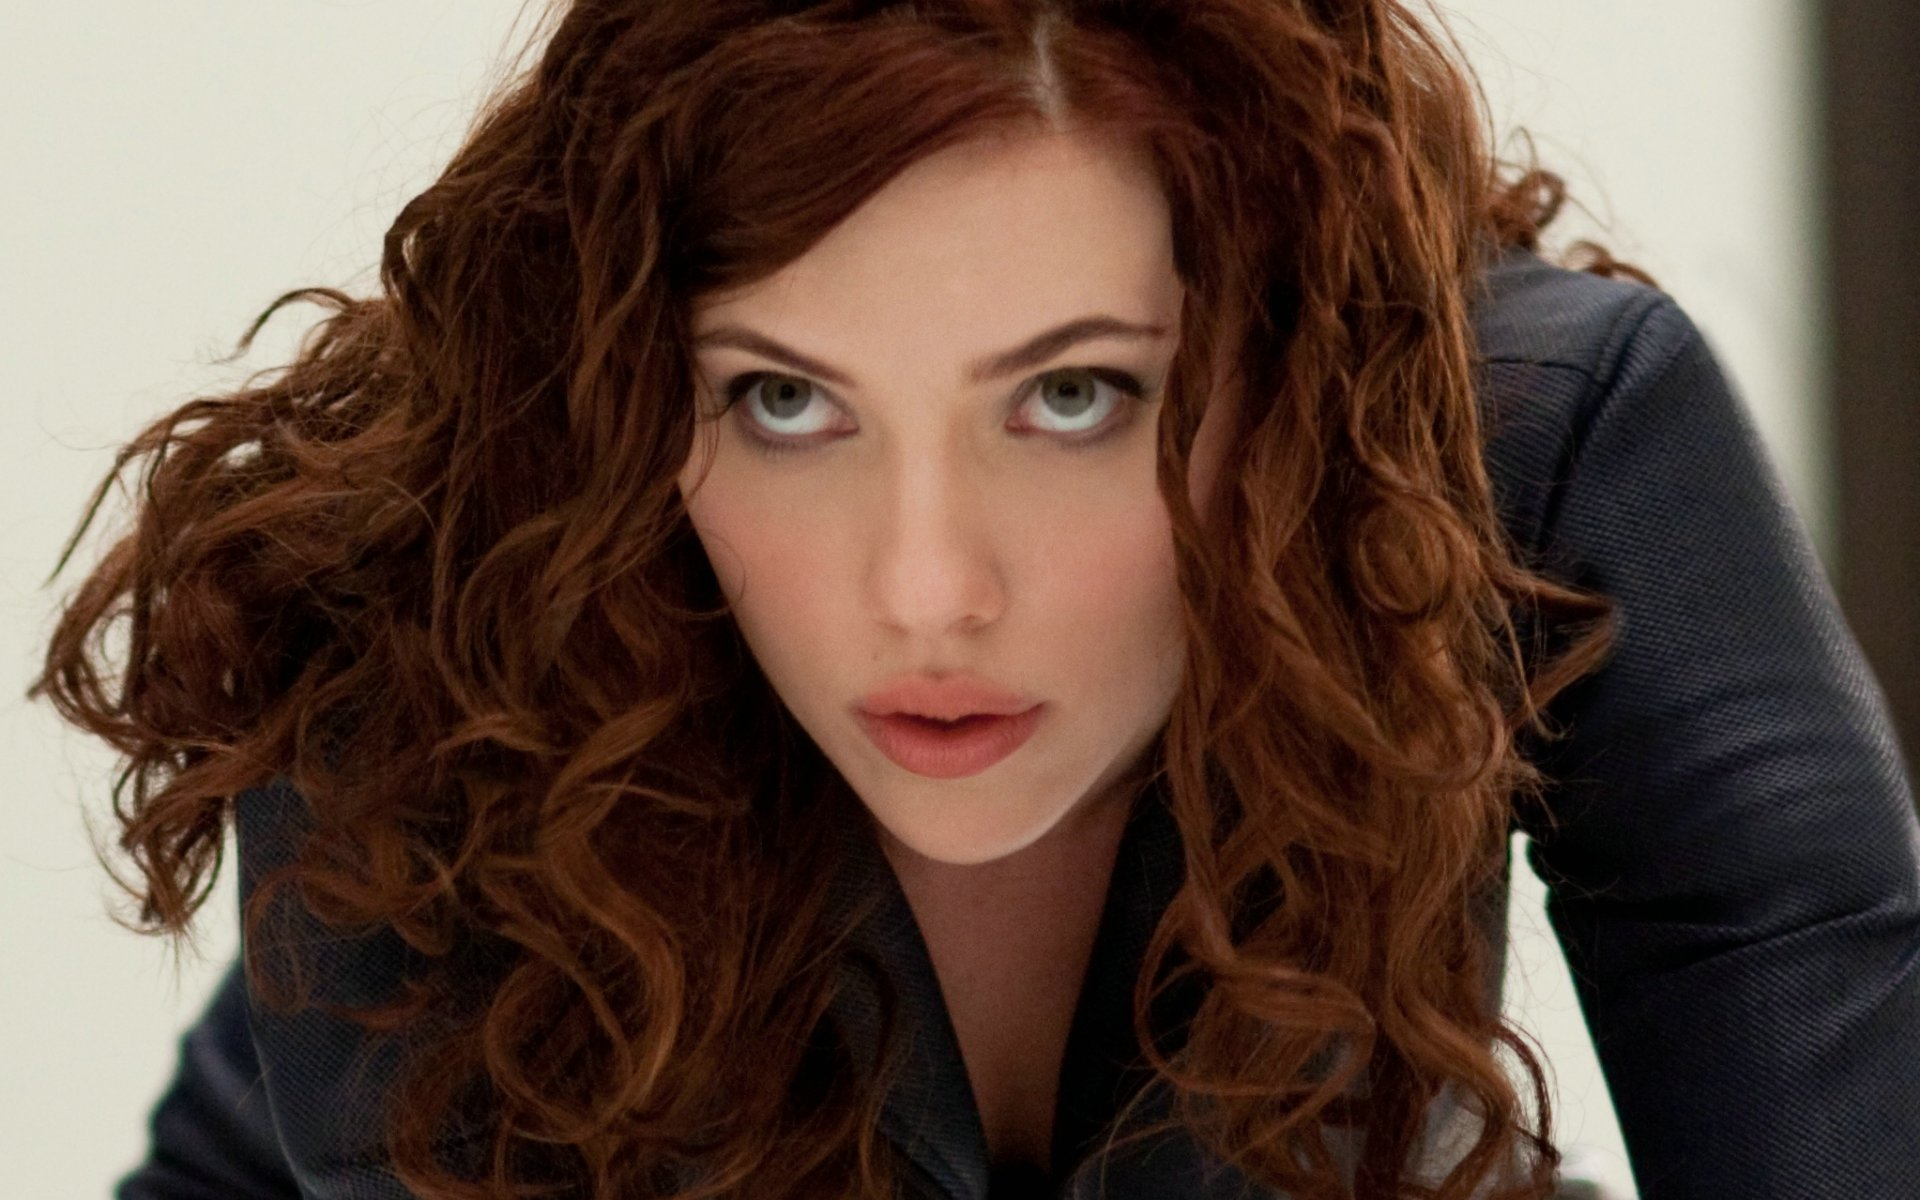 http://images2.fanpop.com/image/photos/9500000/Black-Widow-Iron-Man-2-Widescreen-Wallpaper-scarlett-johansson-9563796-1920-1200.jpg